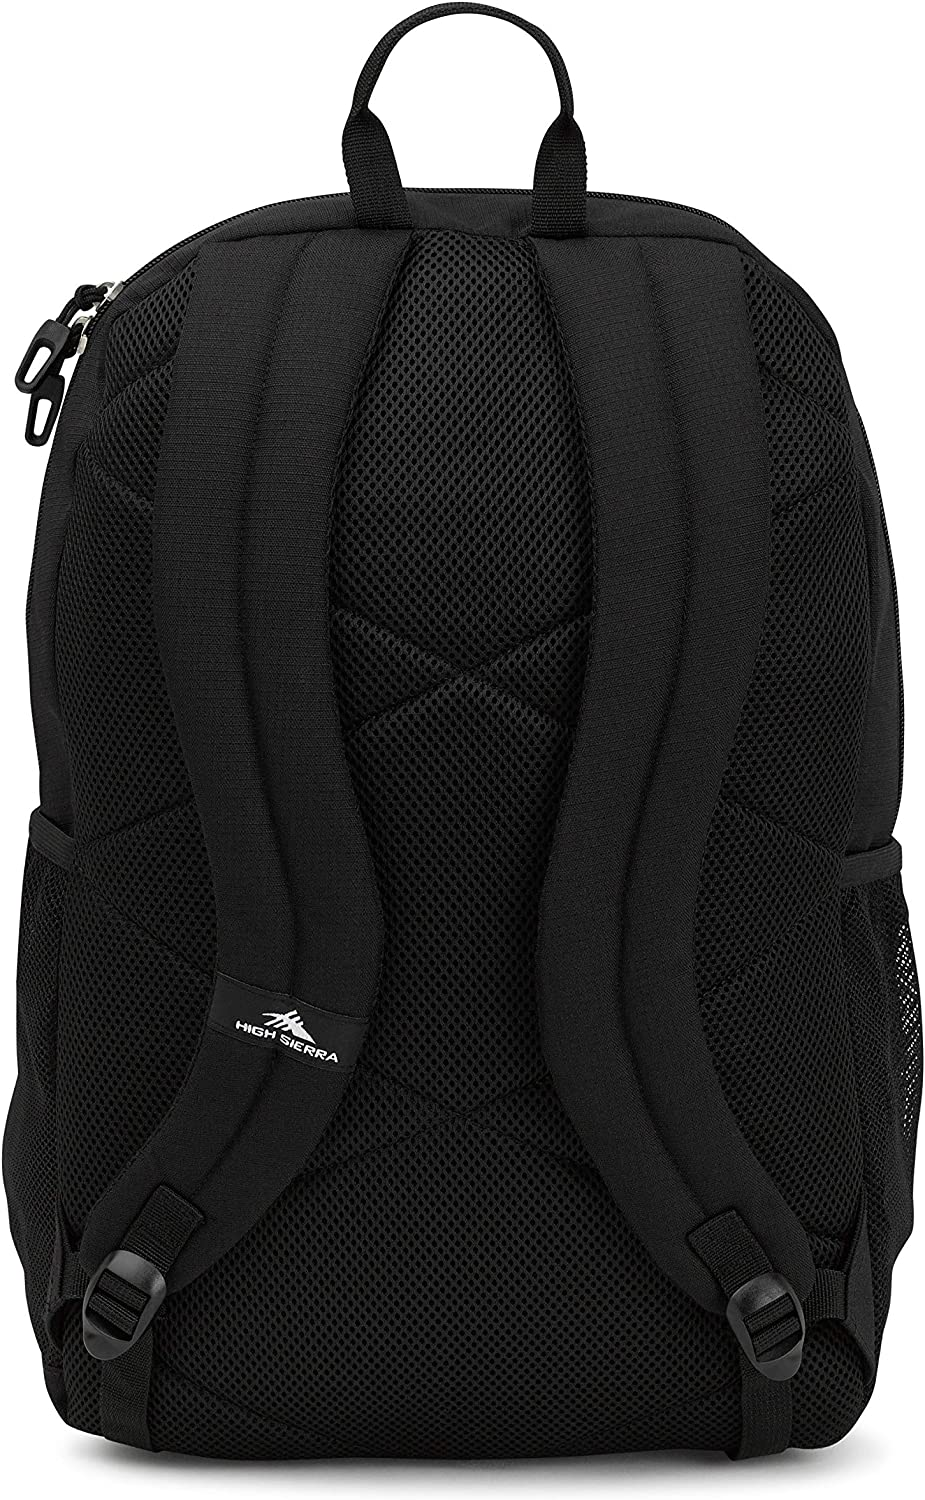 High Sierra Daio Backpack with Padded Mesh Shoulder Straps Ideal for High School and College Students